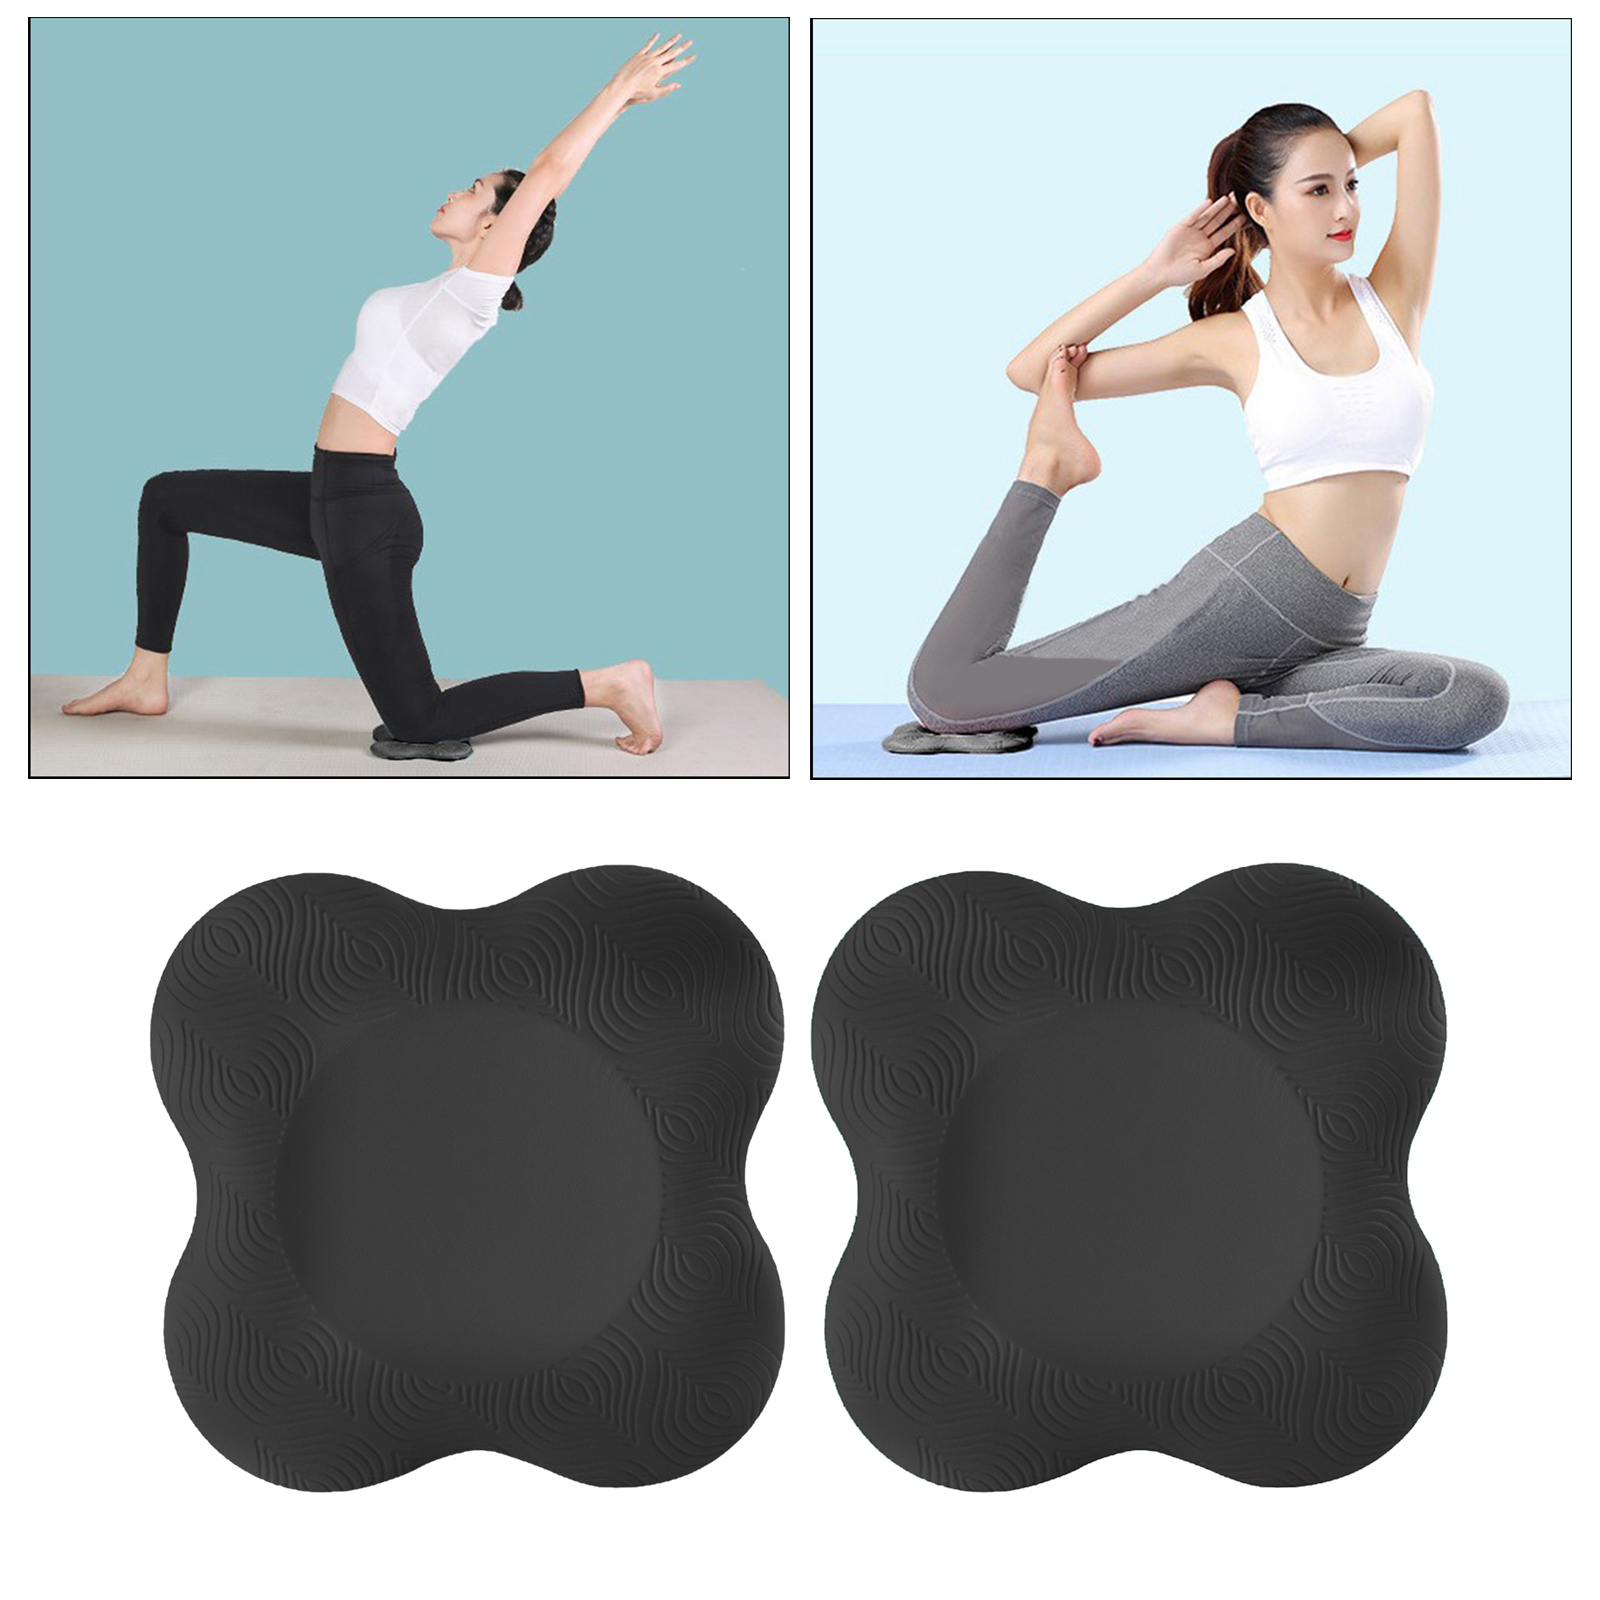 2pcs Non-Slip Nonslip Yoga Elbow Mat Knee Pad Cushion Thick for Exercise Fitness Workout Plank Pilates Travel Gym Floor Square